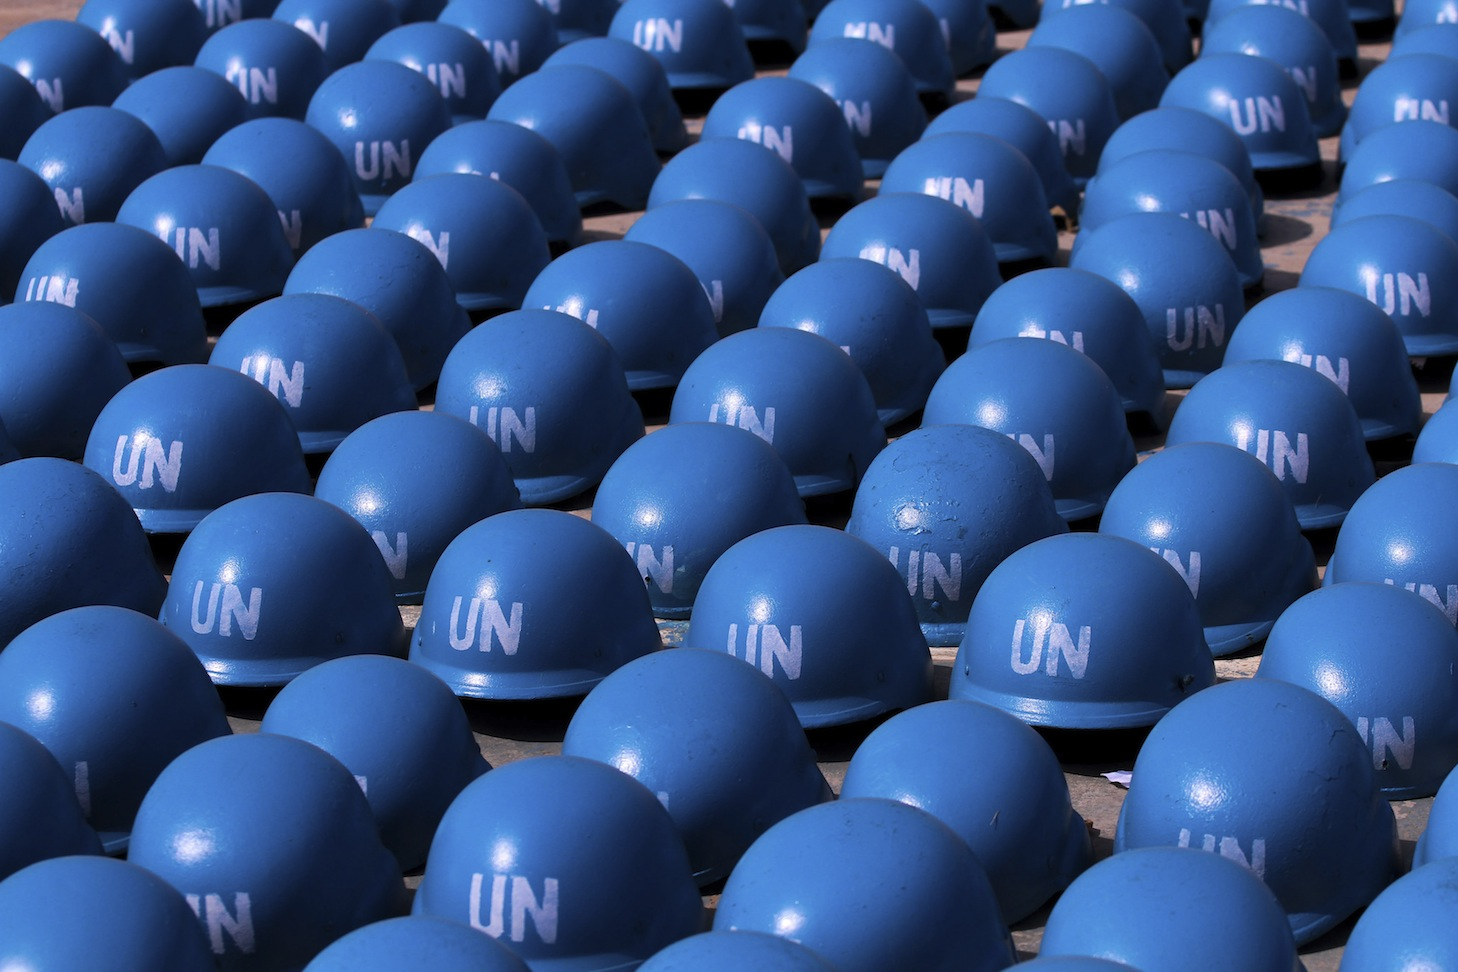 International Day of United Nations Peacekeepers Wallpapers HD 1458x972